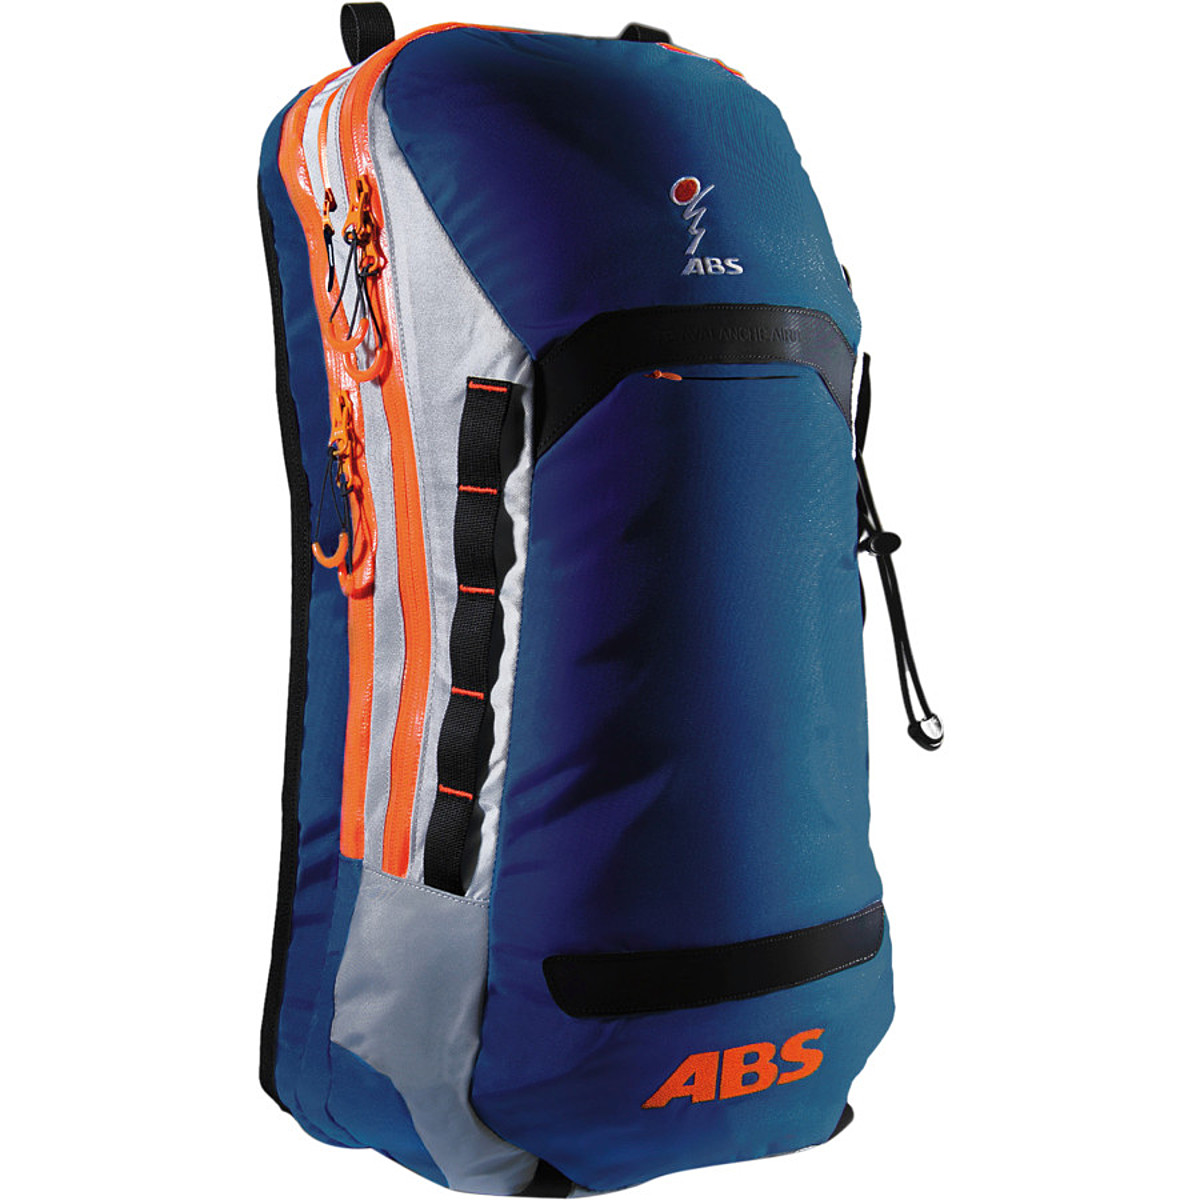 photo of a ABS avalanche airbag pack